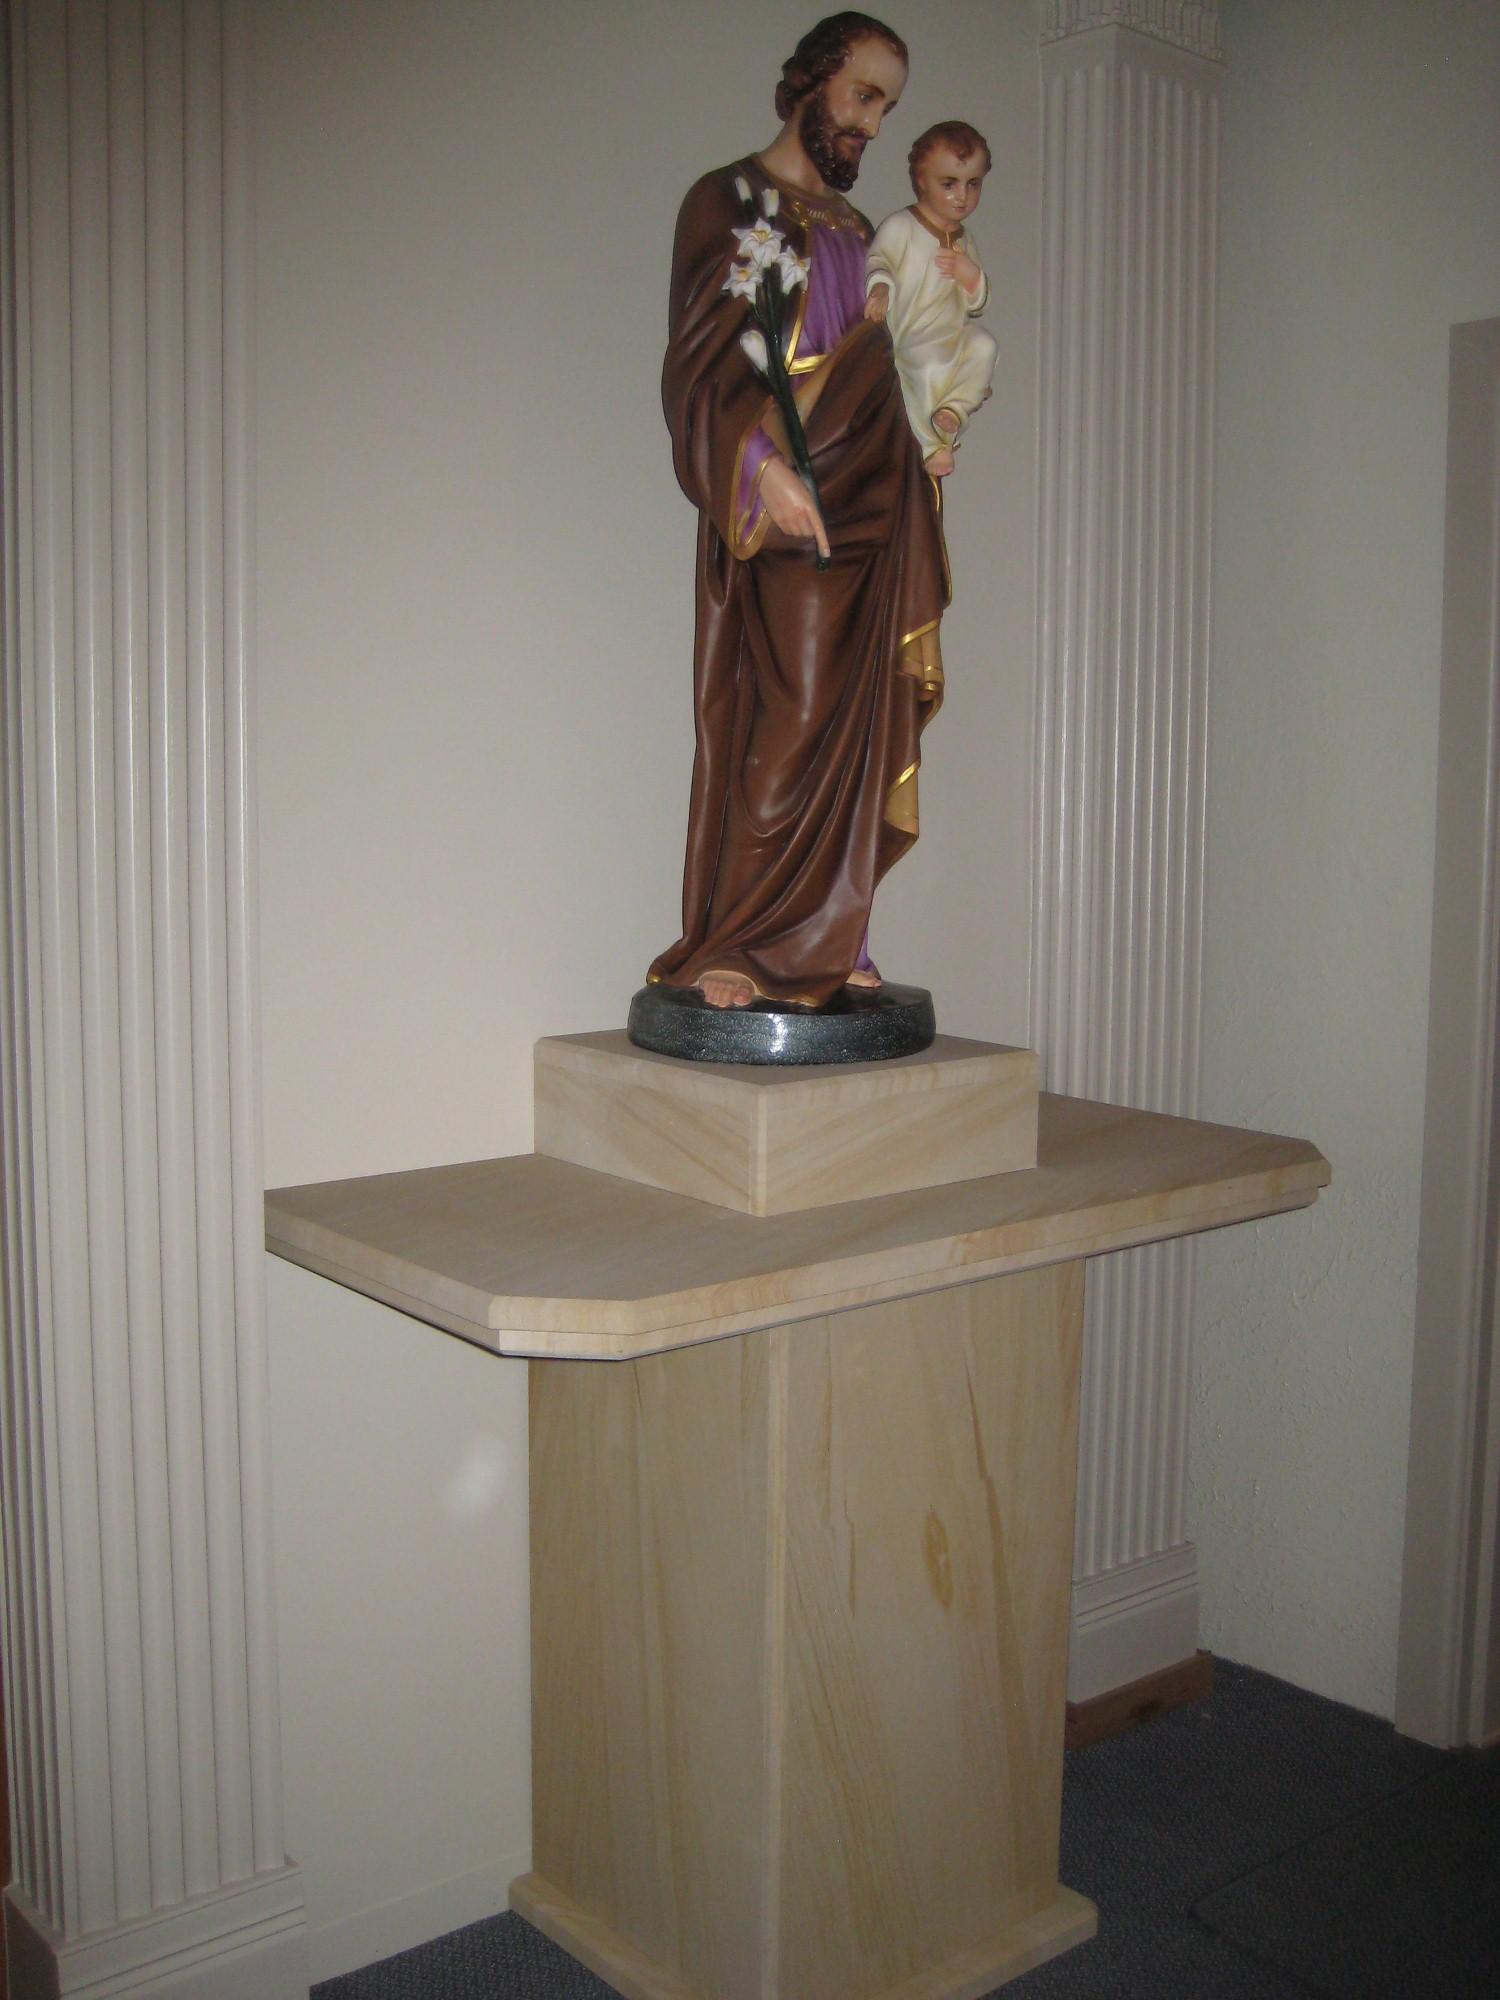 33. Woodgrain sandstone pedestal for churche. We make furniture to order